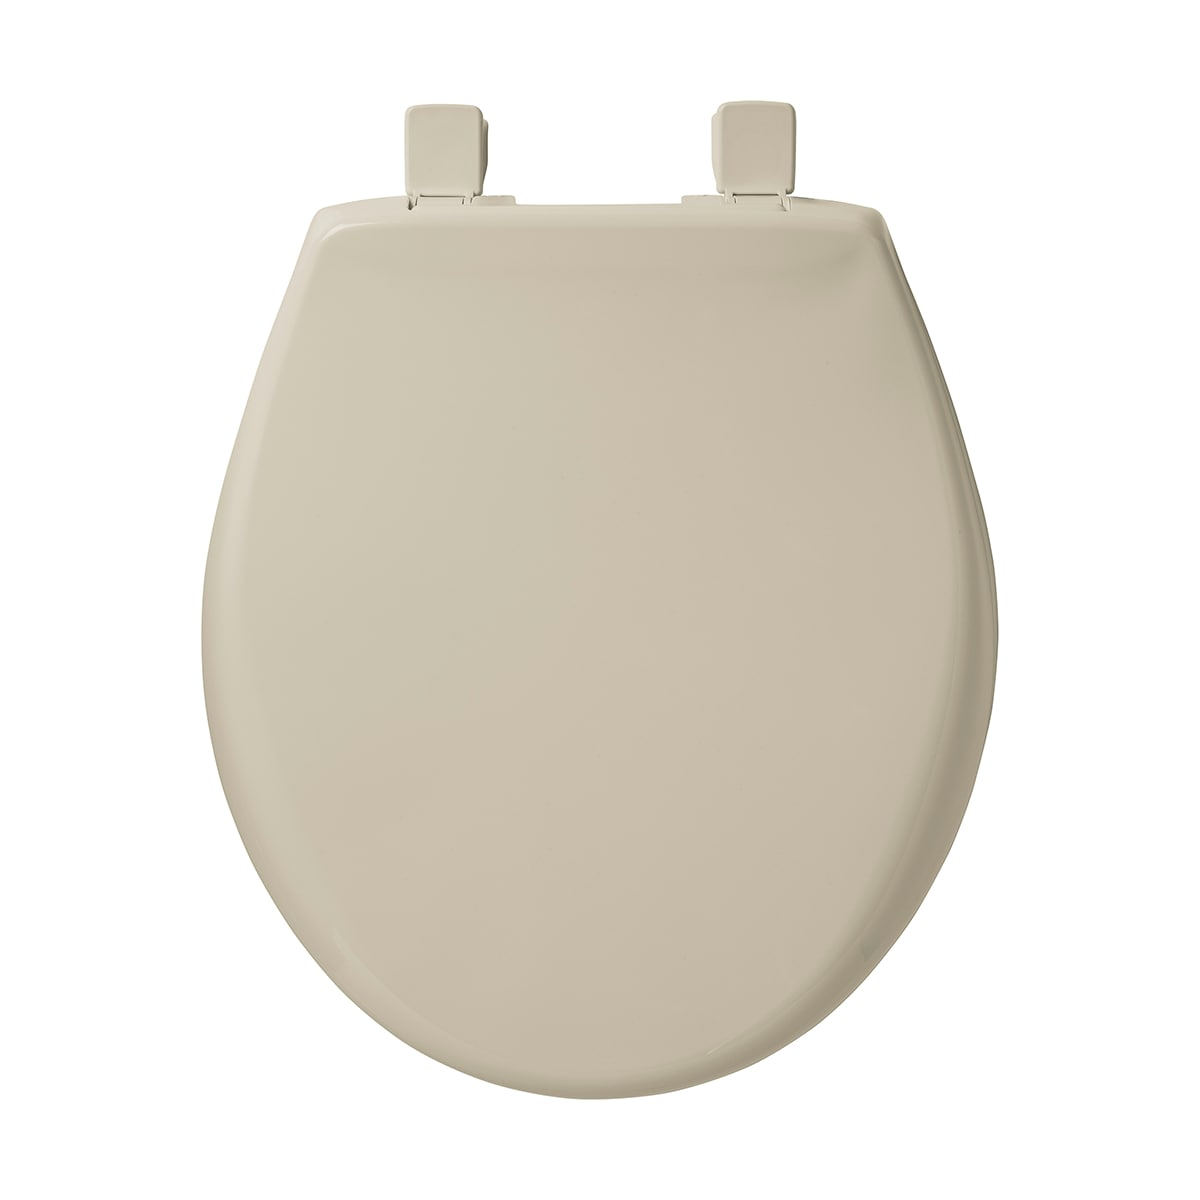 Peachy Bemis 200E3 146 Almond Round Closed Front Toilet Seat And Pdpeps Interior Chair Design Pdpepsorg